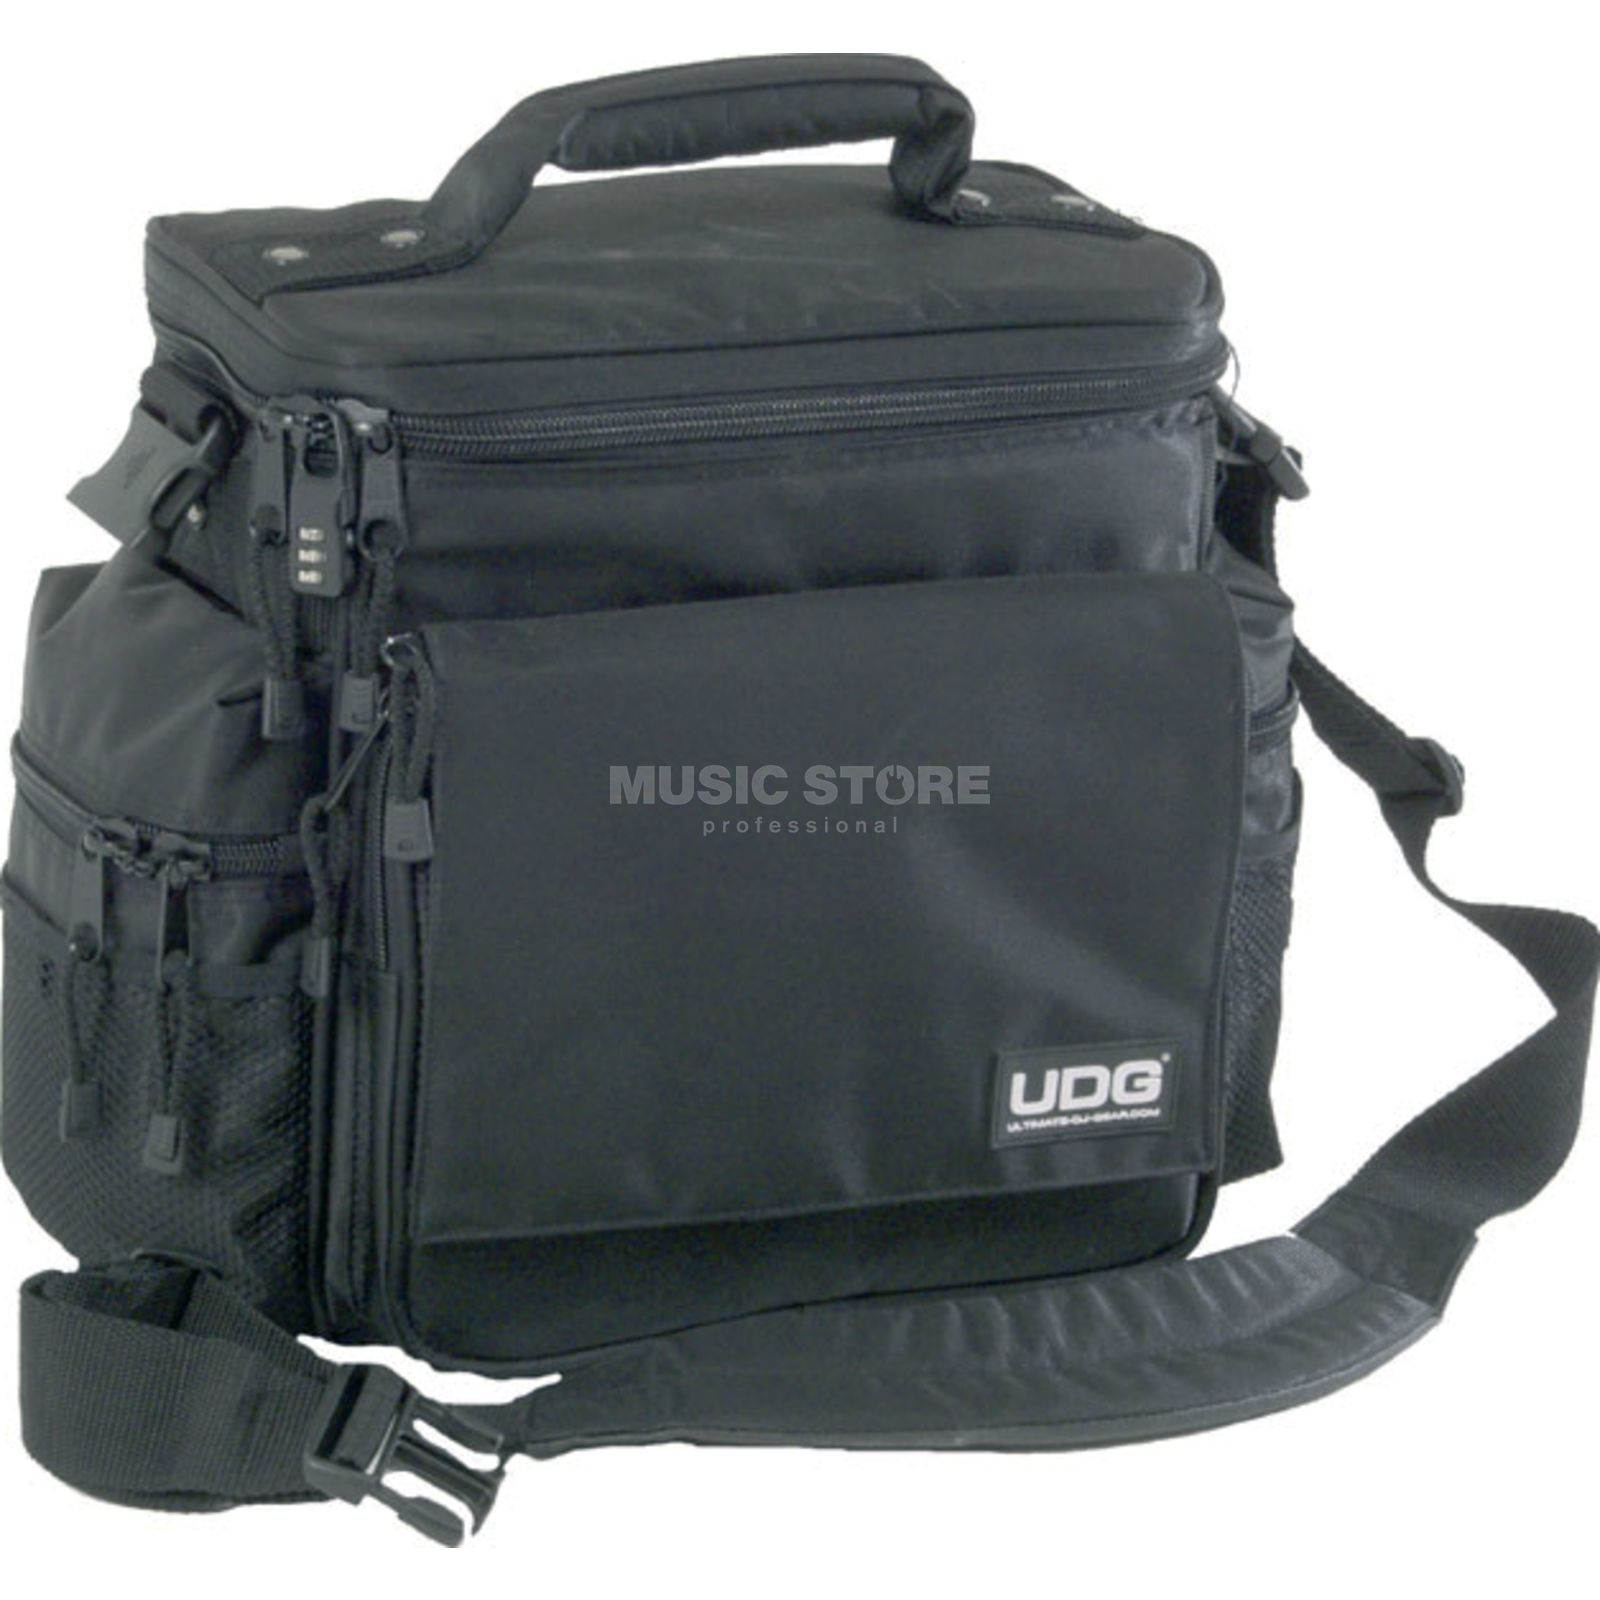 UDG SlingBag black / for 45 LP´s incl. 2 CD Maps Produktbillede